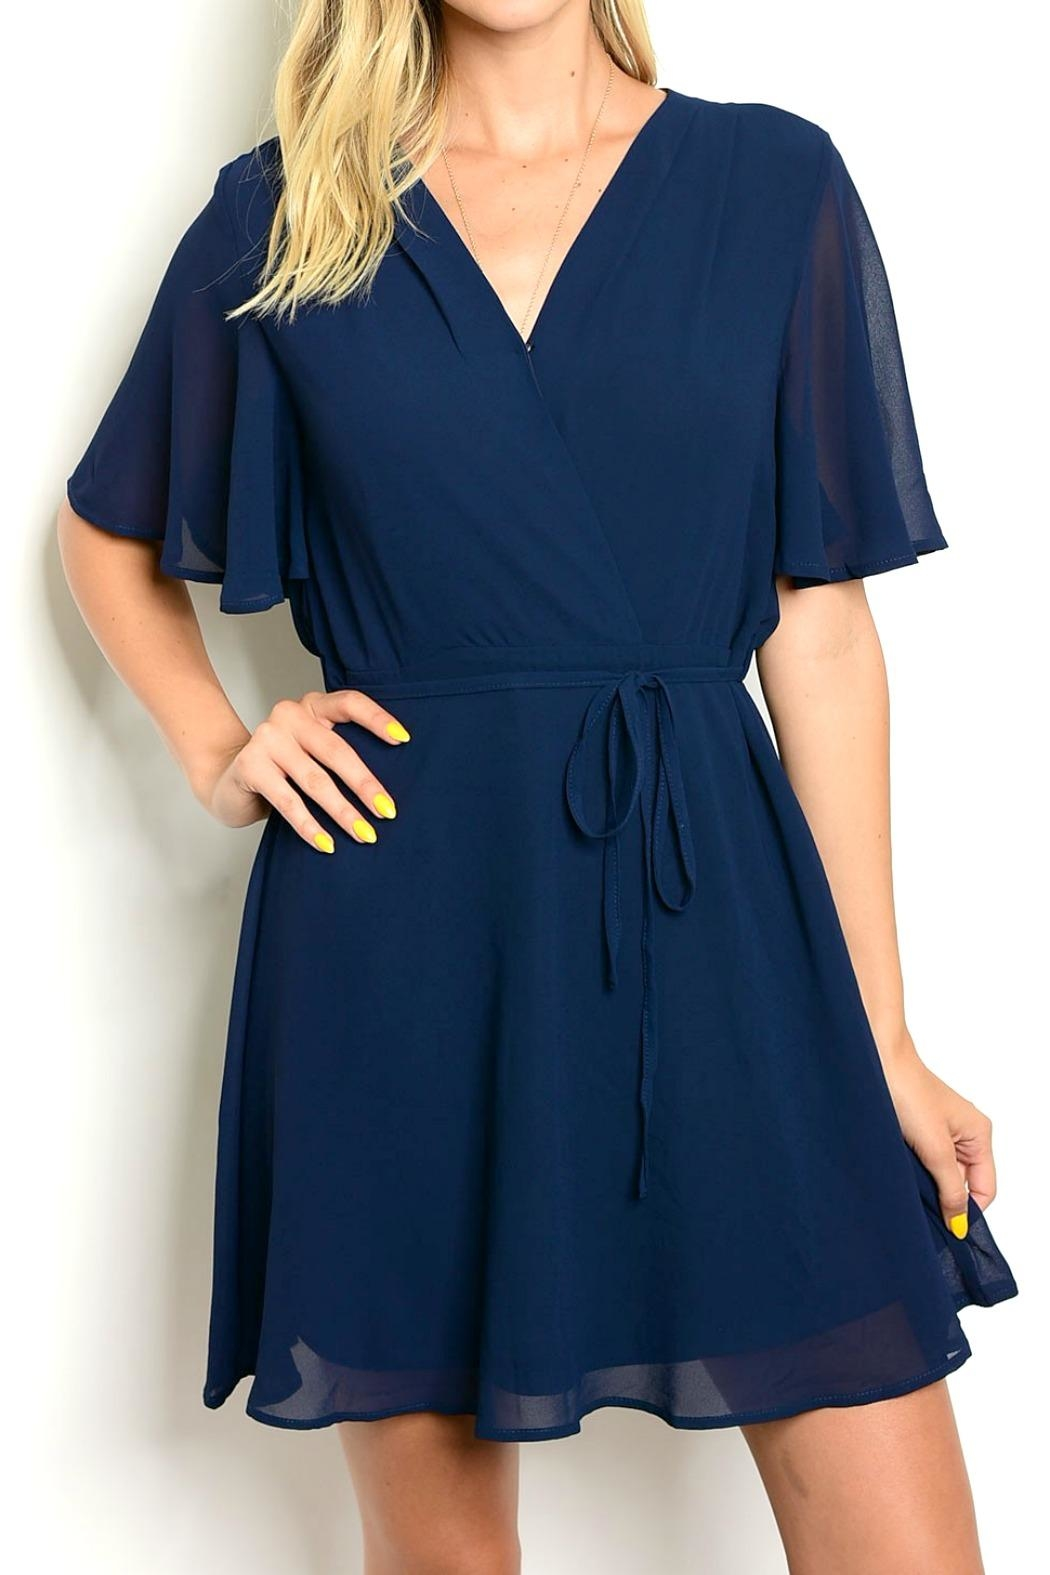 LoveRiche Anna Navy Wrap Dress - Main Image